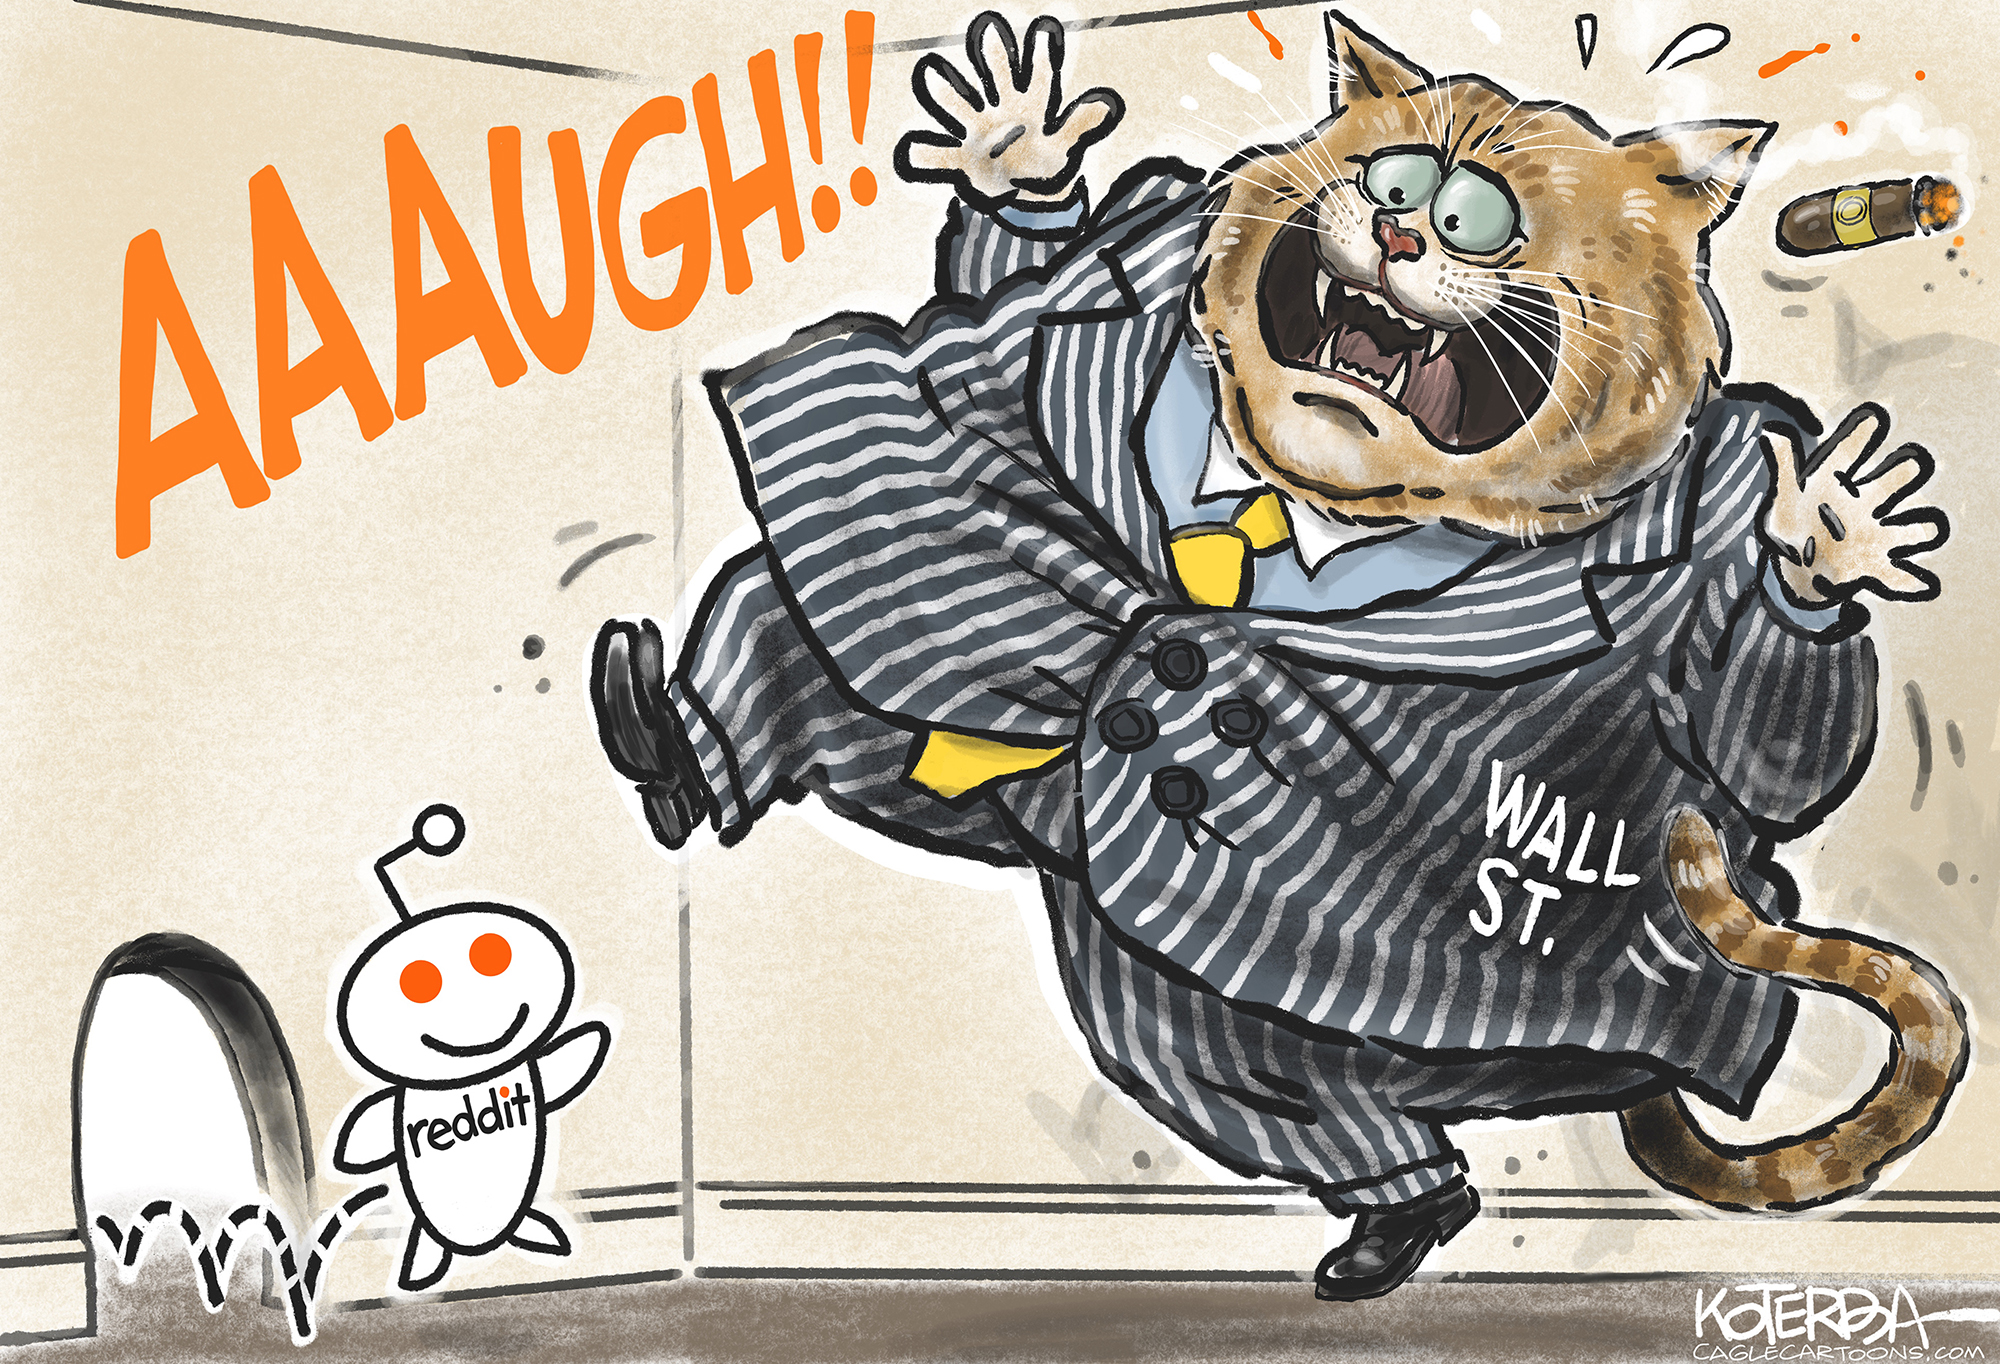 Editorial Cartoon: Wall Street and Reddit – The Independent | News Events Opinion More